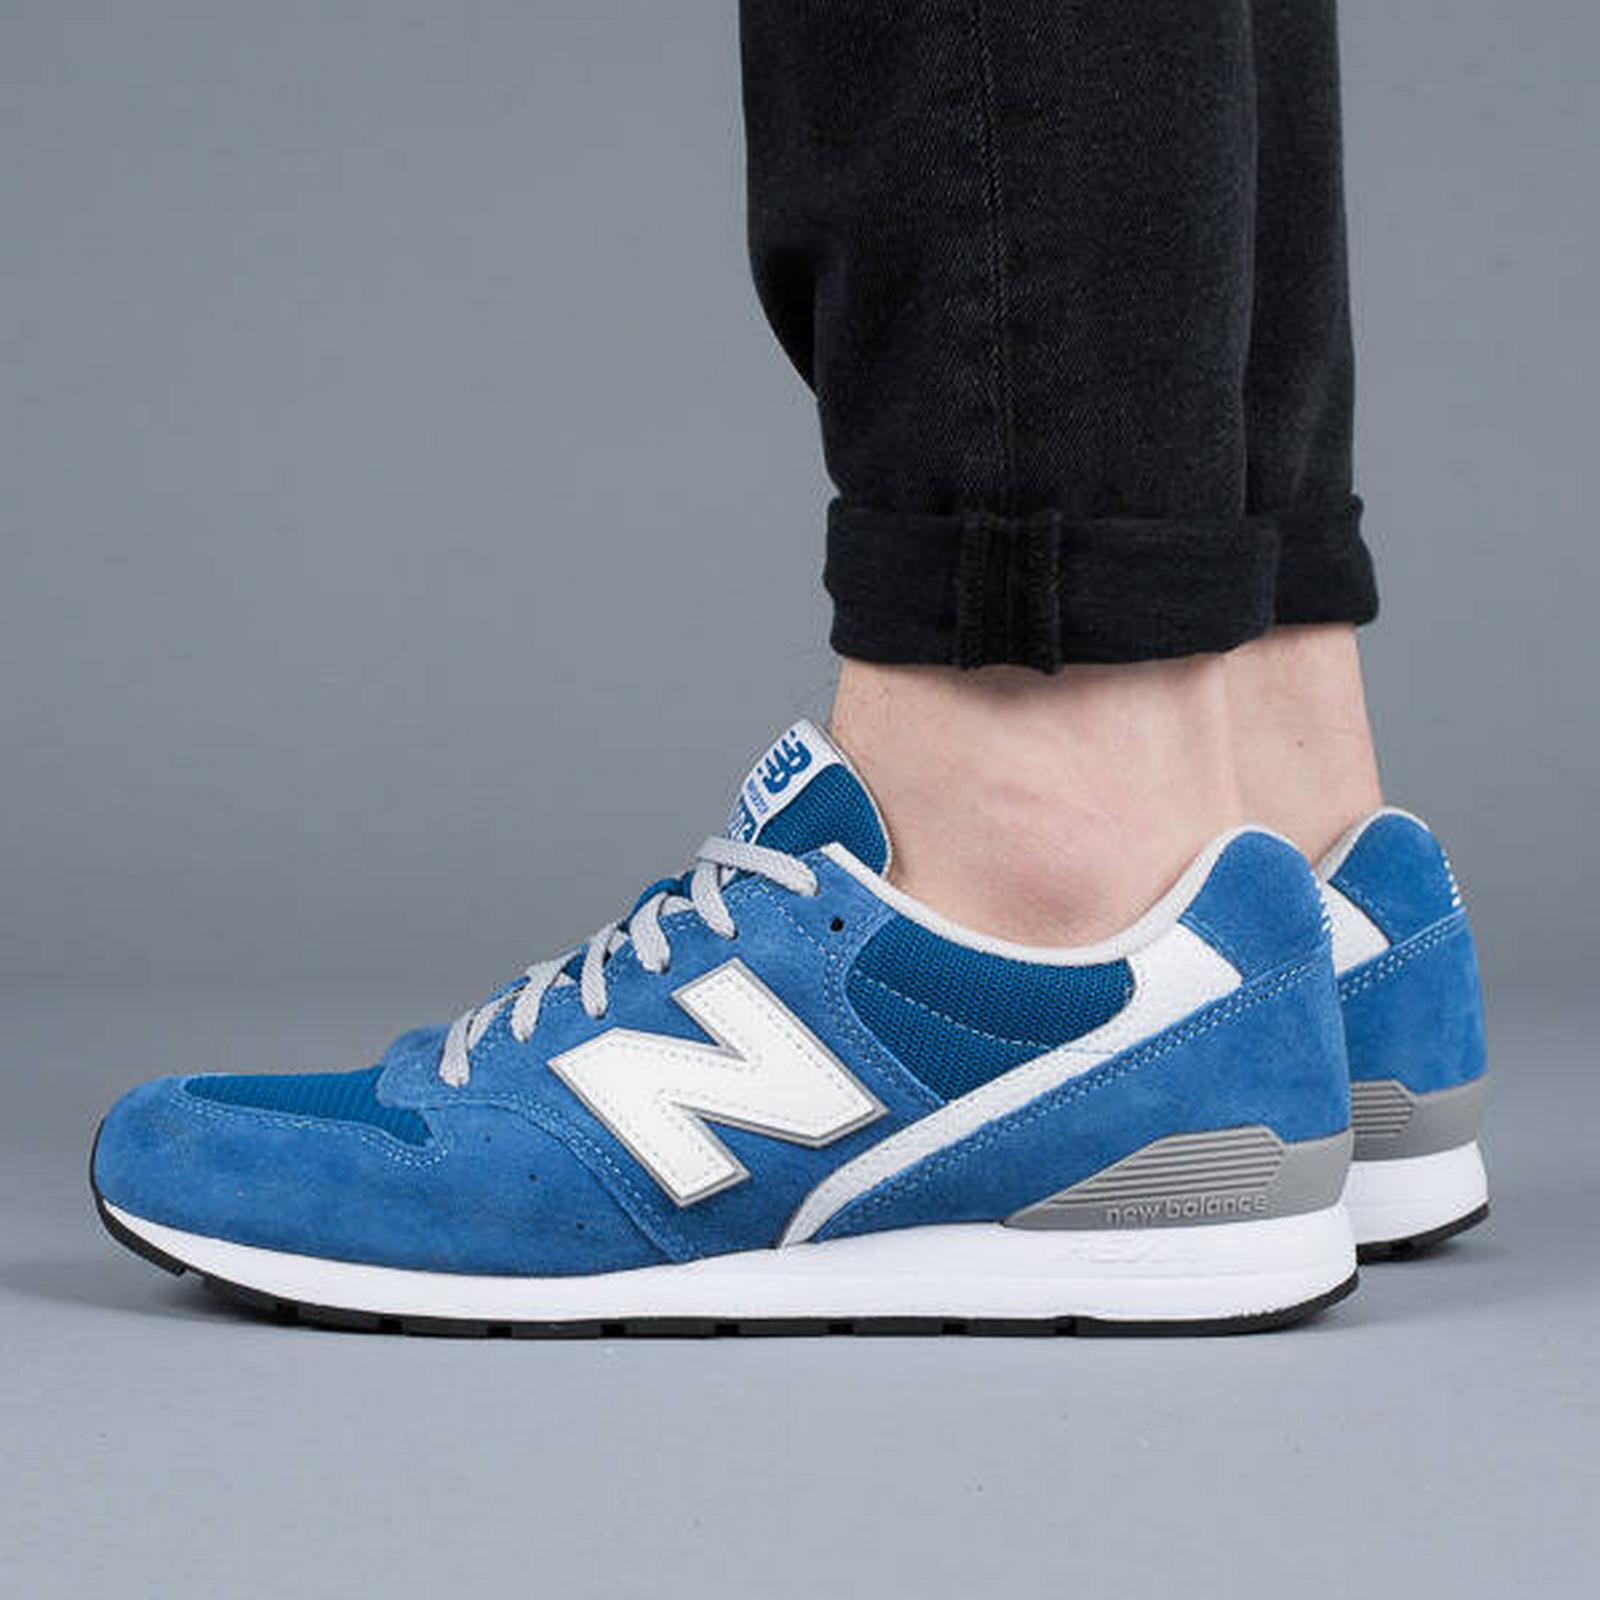 New Balance Men's Shoes sneakers New 44 Balance MRL996KC BLUE Size 44 New ca9638